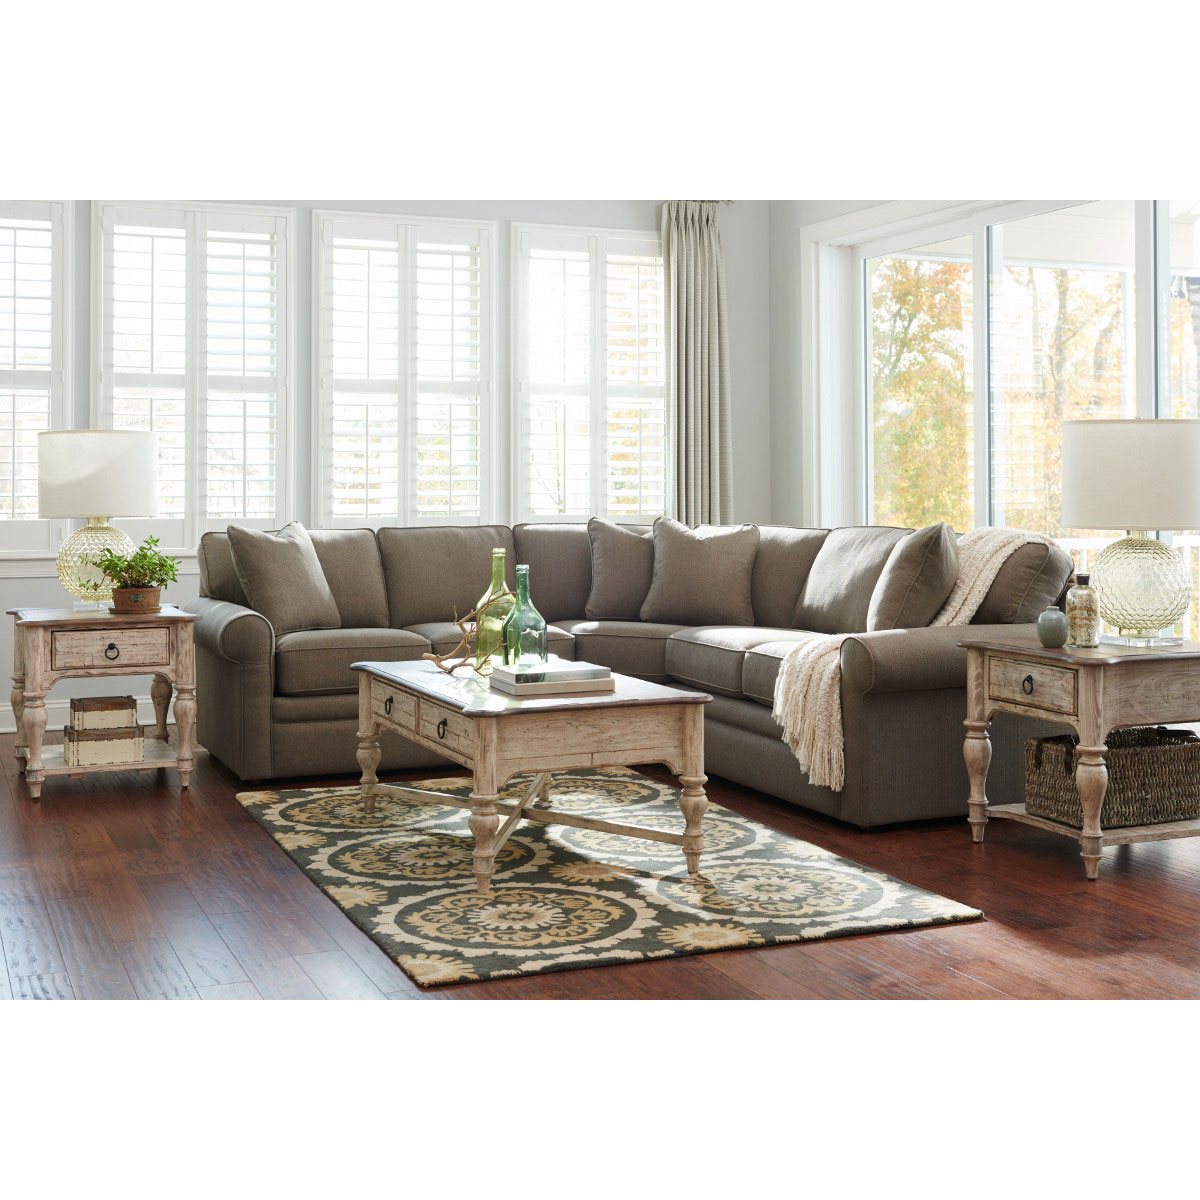 Fashionable Collins Sectional With Regard To Collins Sofa Sectionals With Reversible Chaise (Gallery 1 of 20)